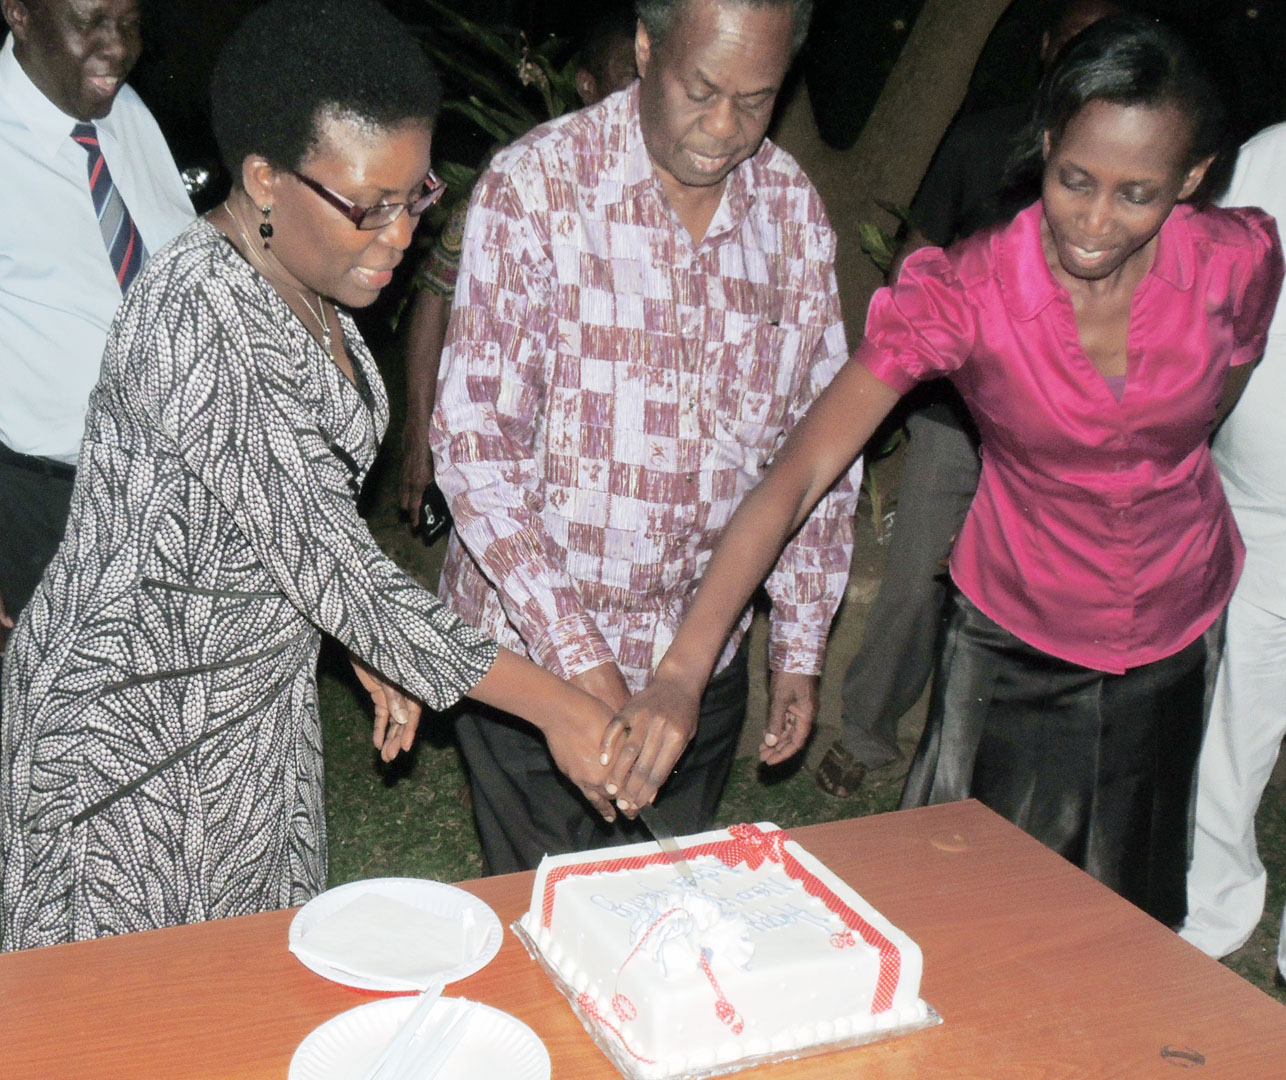 Prof Francis Omaswa cutting the cake with Dr Elsie Kiguli-Malwadde left and Harriet Malinga right